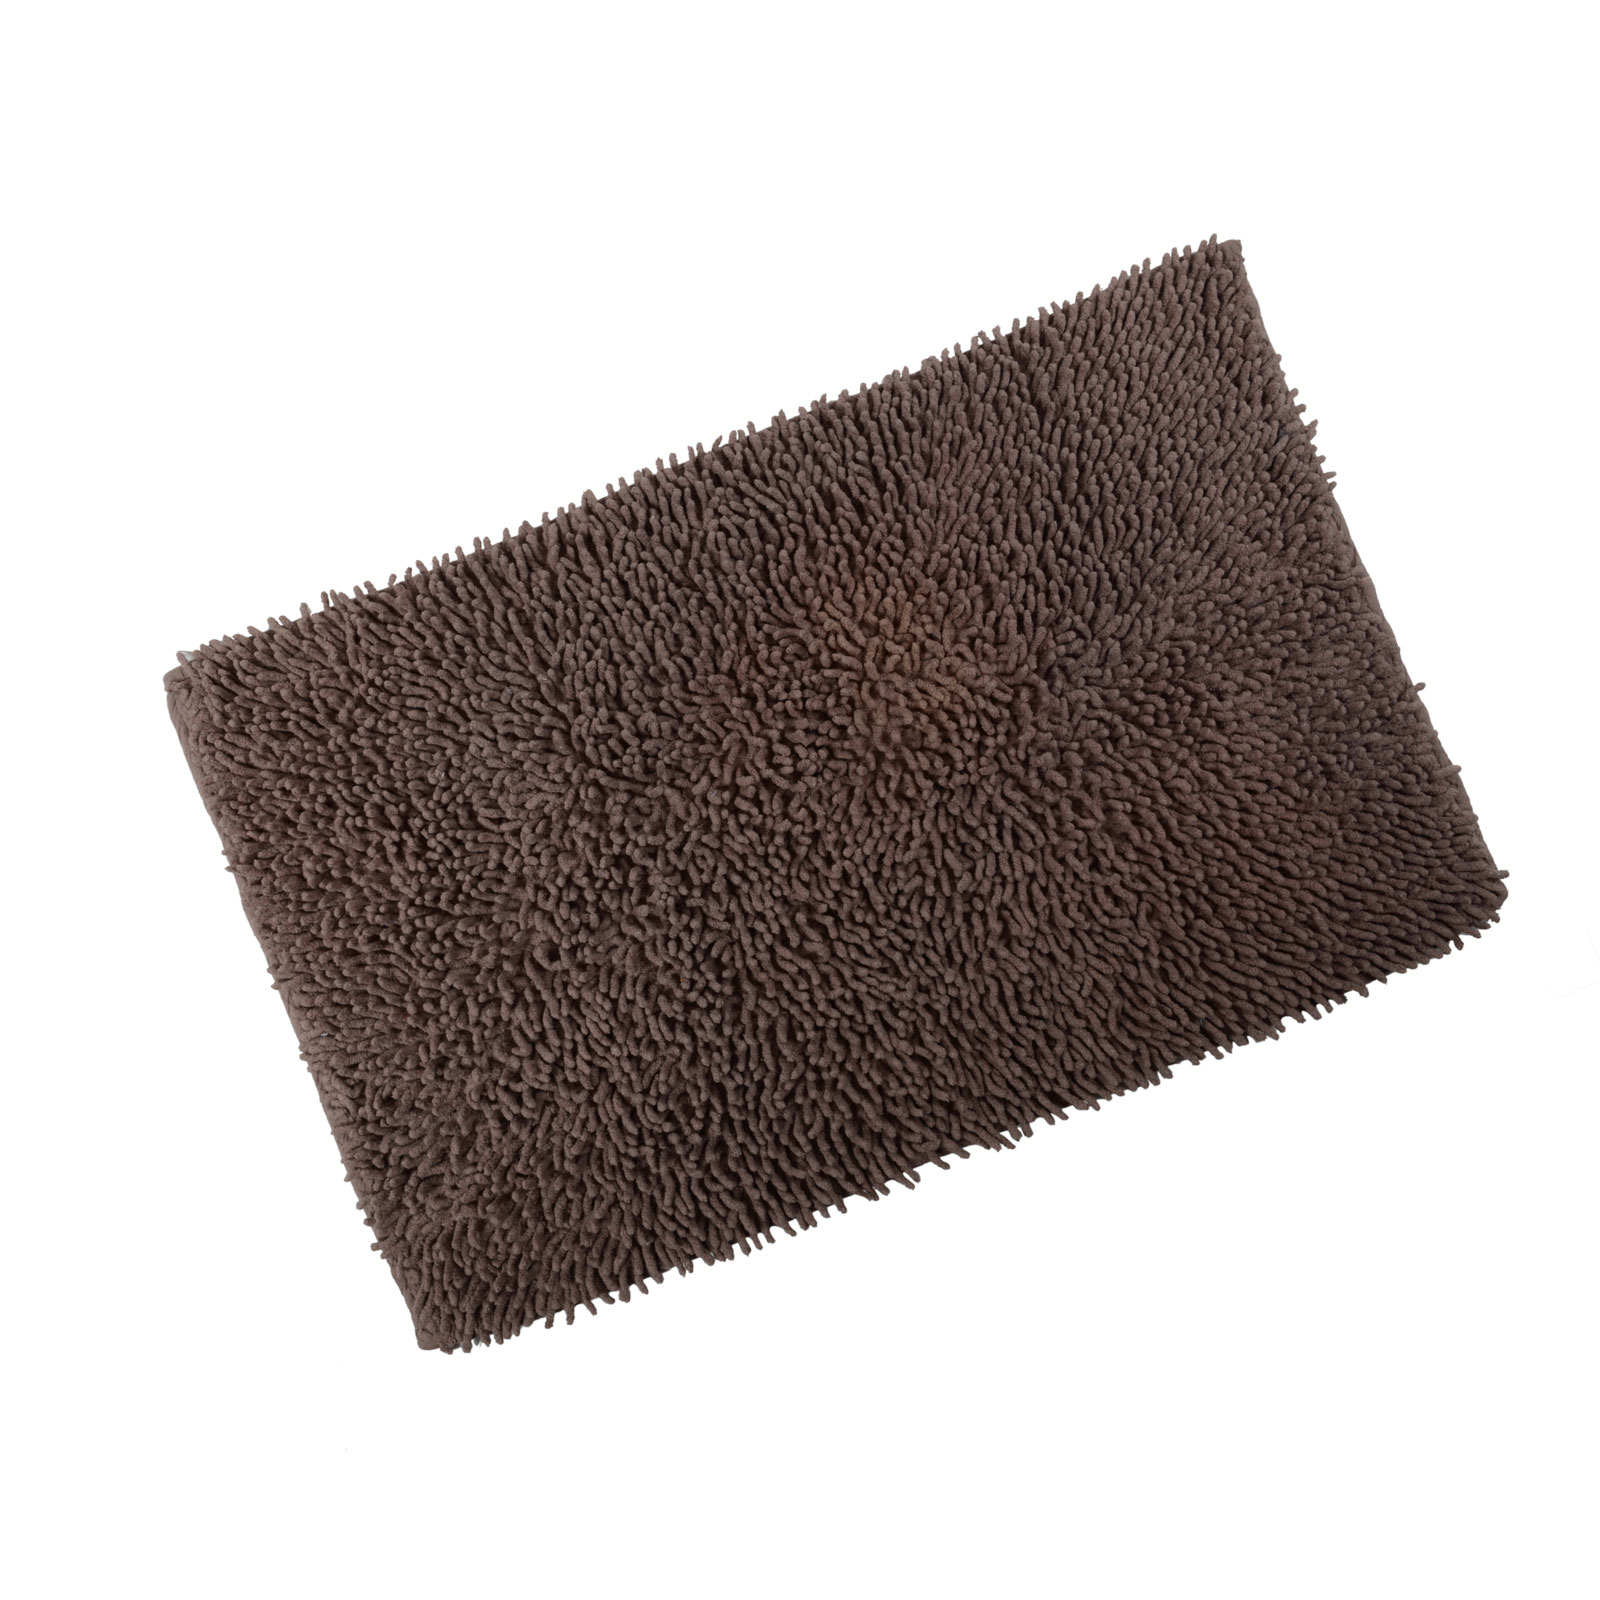 Attractive Odyssey Chenille Cotton Shower Bath Mat Soft Washable